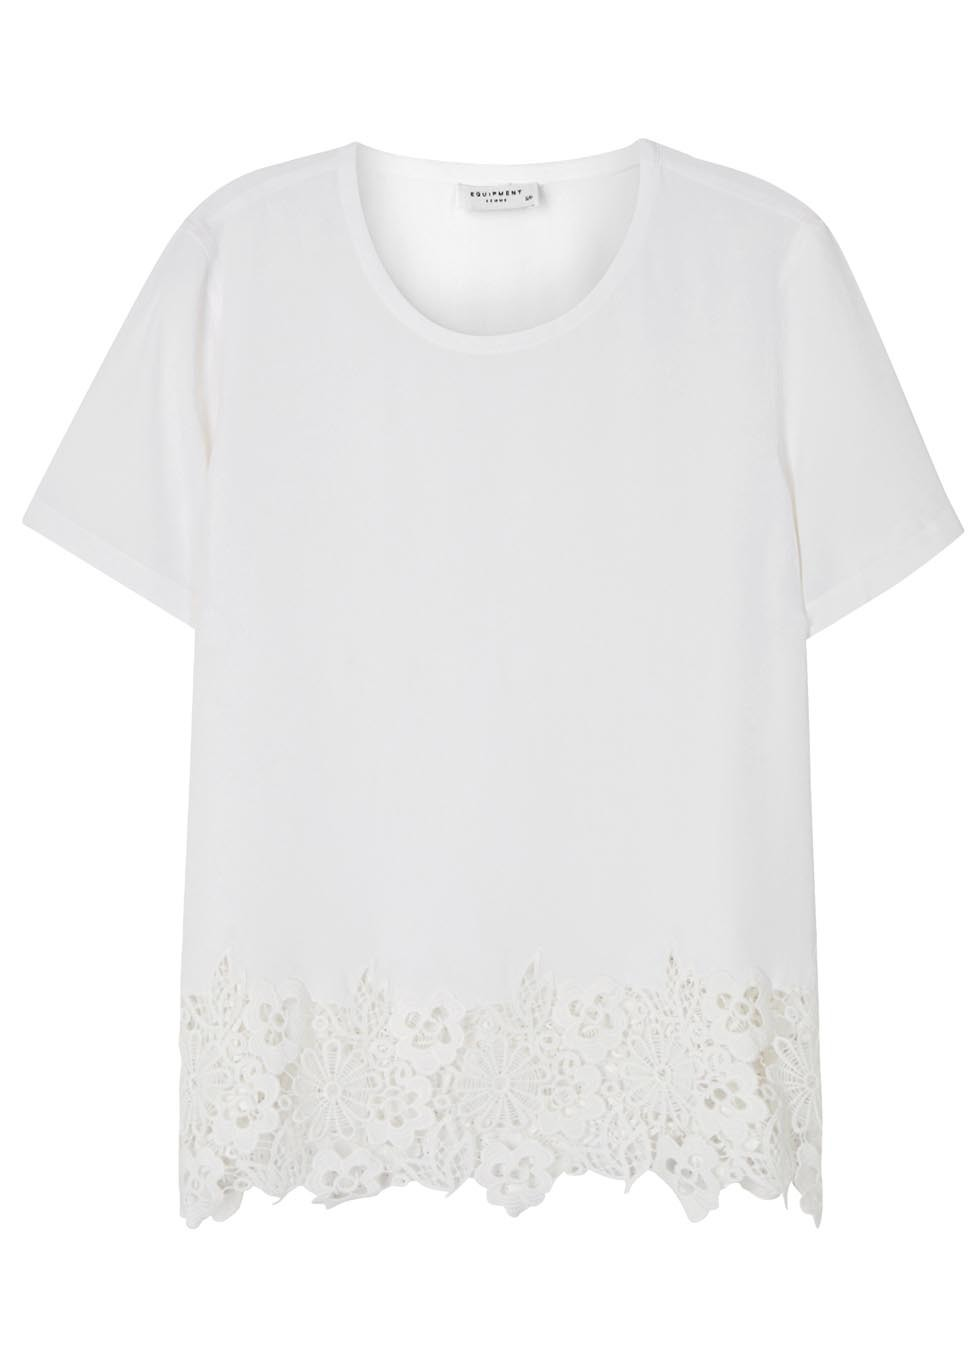 Riley Macramé Trimmed Silk T Shirt - pattern: plain; style: t-shirt; predominant colour: white; occasions: casual; length: standard; fibres: silk - 100%; fit: body skimming; neckline: crew; sleeve length: short sleeve; sleeve style: standard; texture group: silky - light; pattern type: fabric; embellishment: lace; season: s/s 2016; wardrobe: highlight